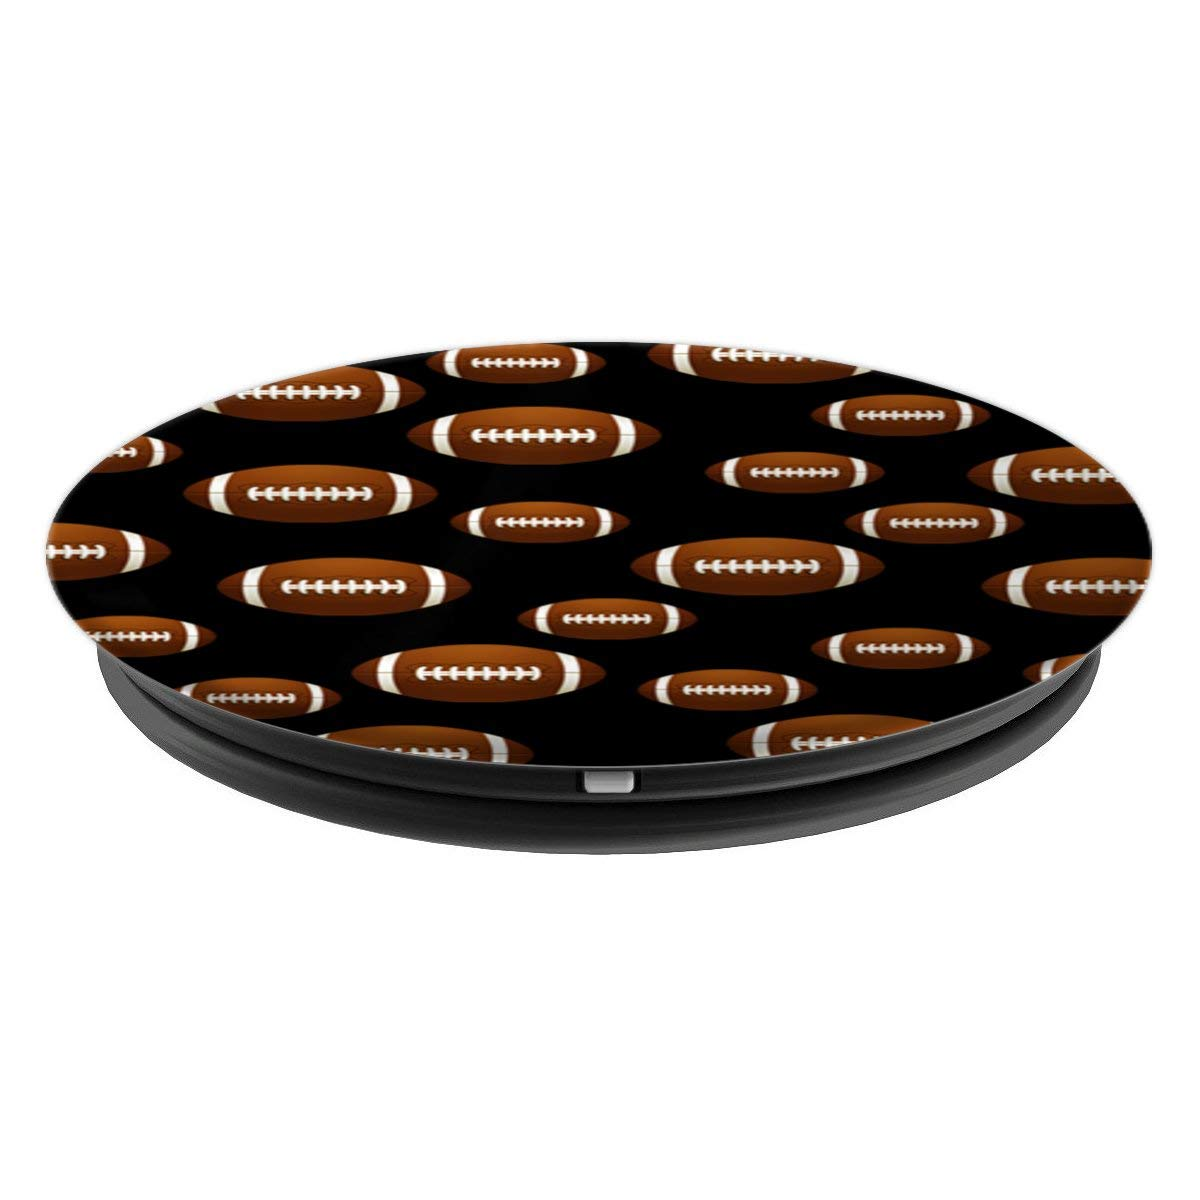 Amazon.com: Football American US Sport Fan Team Player Ball Black - PopSockets Grip and Stand for Phones and Tablets: Cell Phones & Accessories